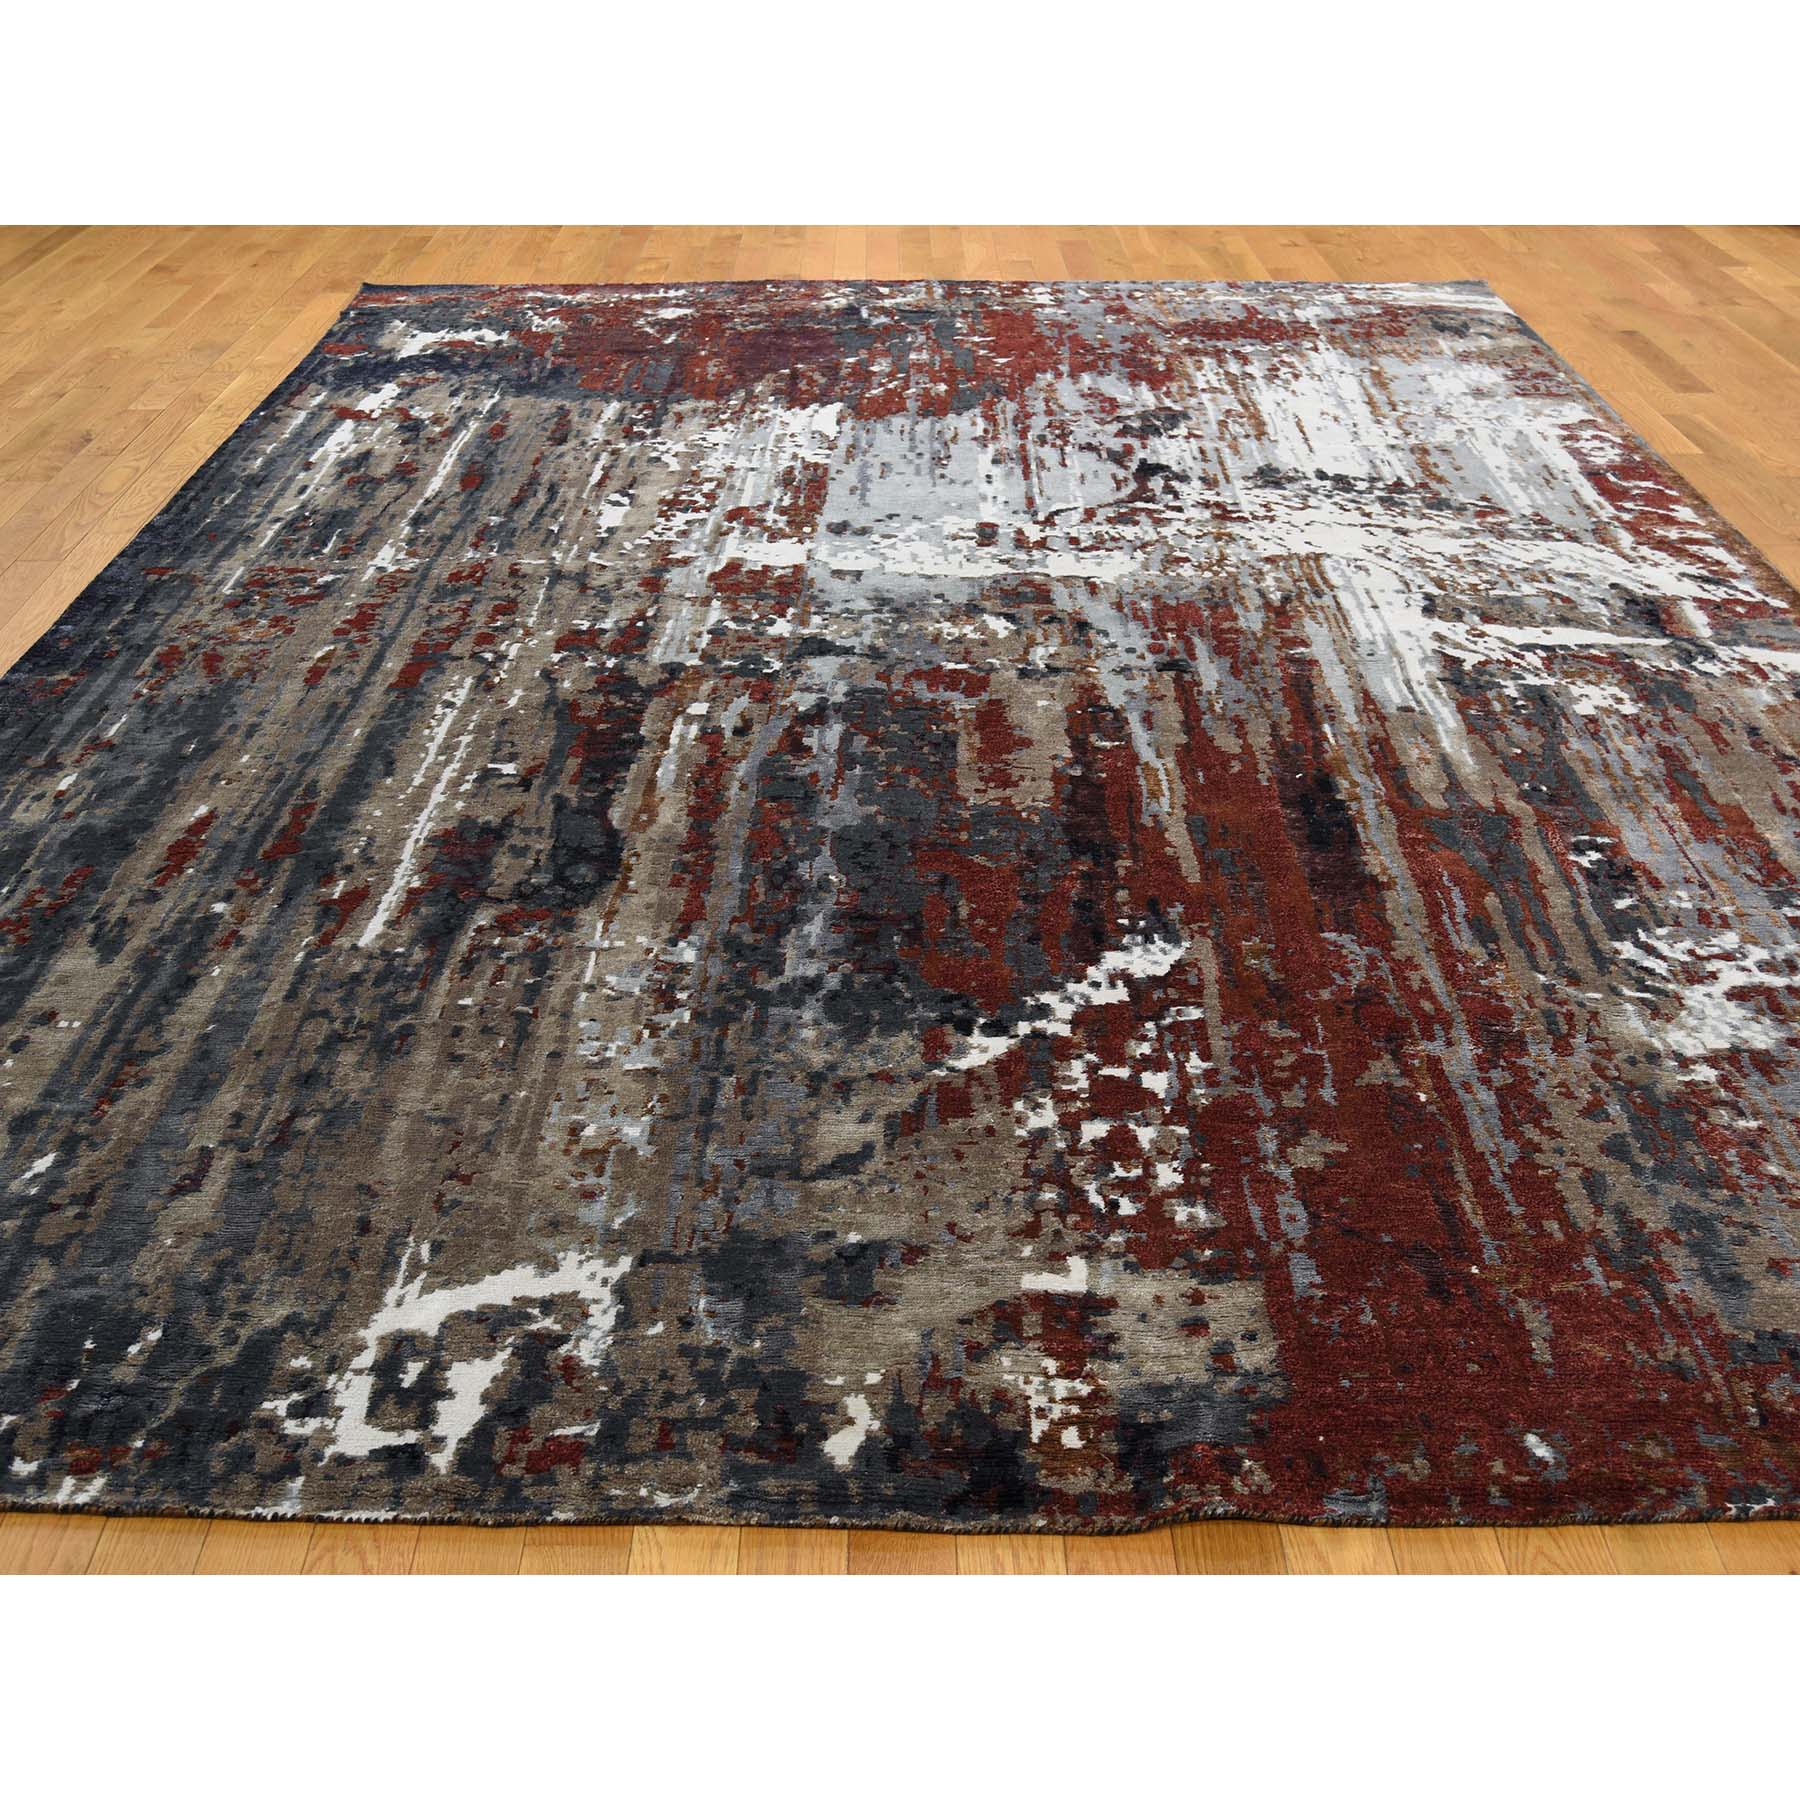 9-x12-2  Hi-Lo Pile Wool and Silk Abstract Design Hand-Knotted oriental Rug